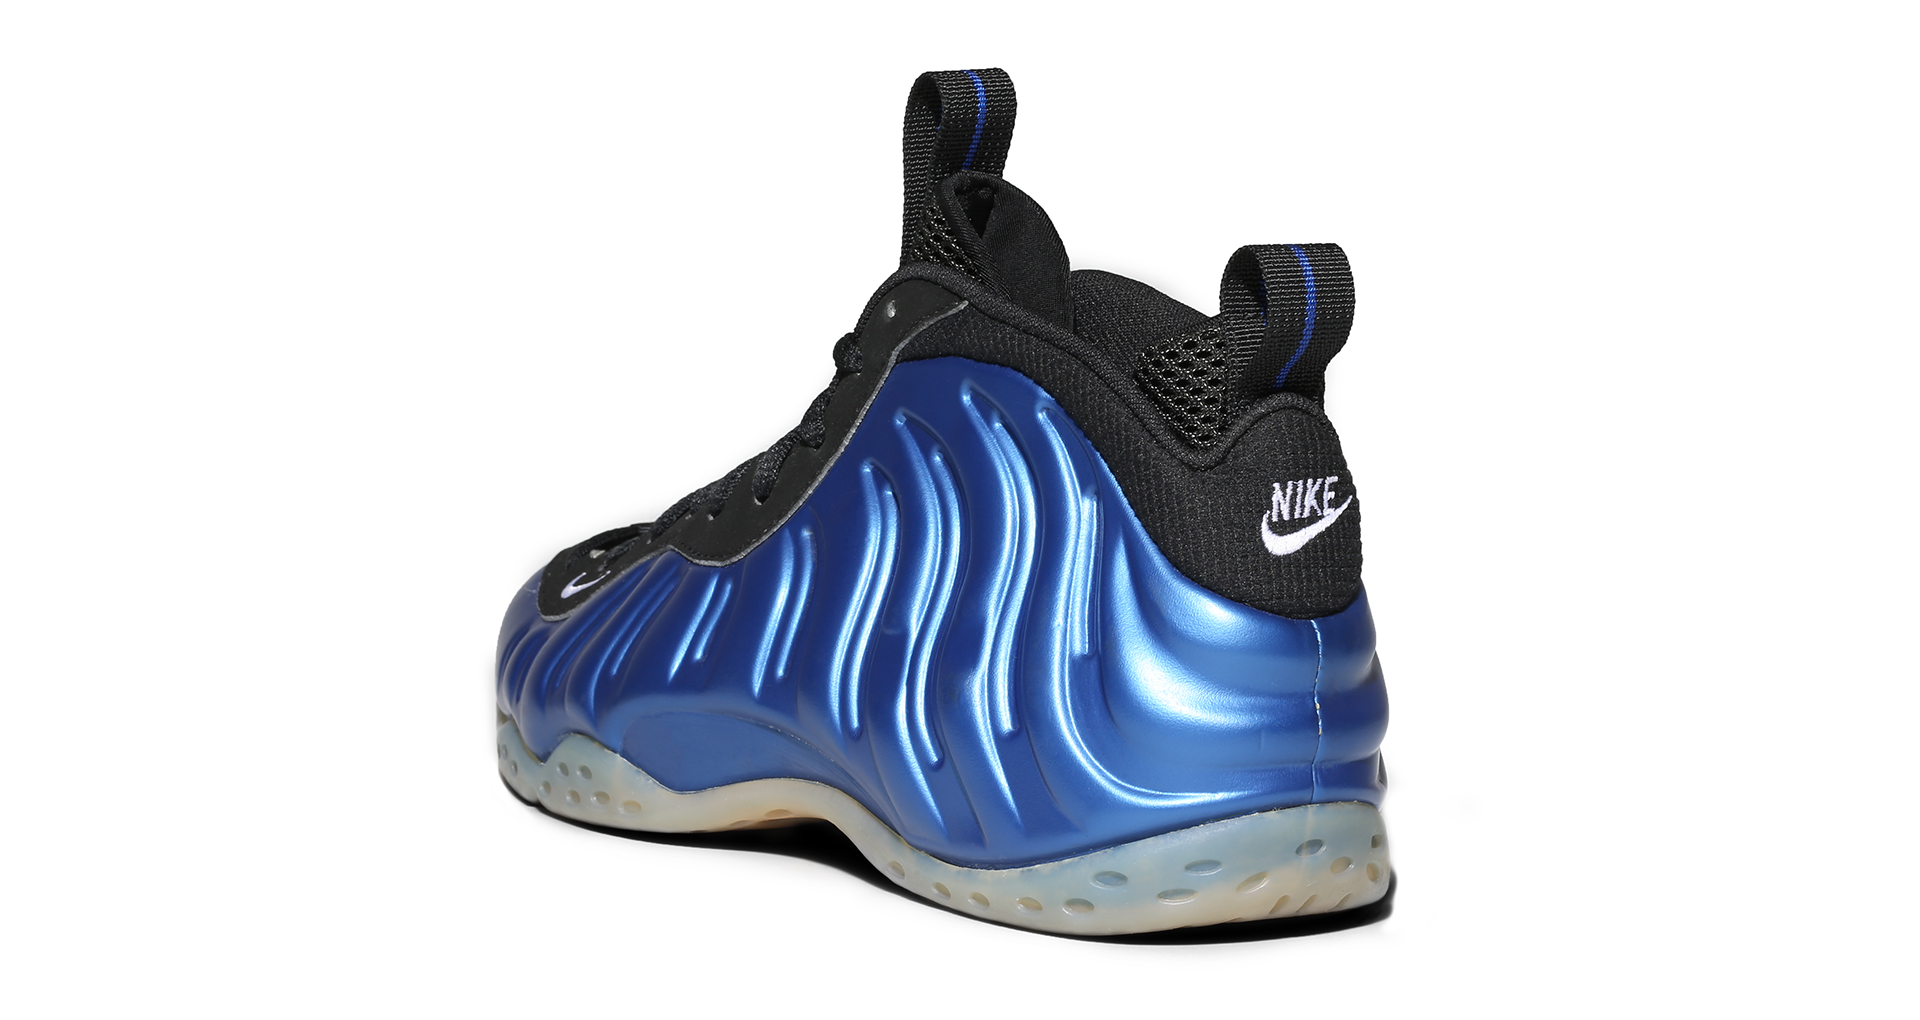 nike-air-foamposite-one-xx-og-royal-895320-500